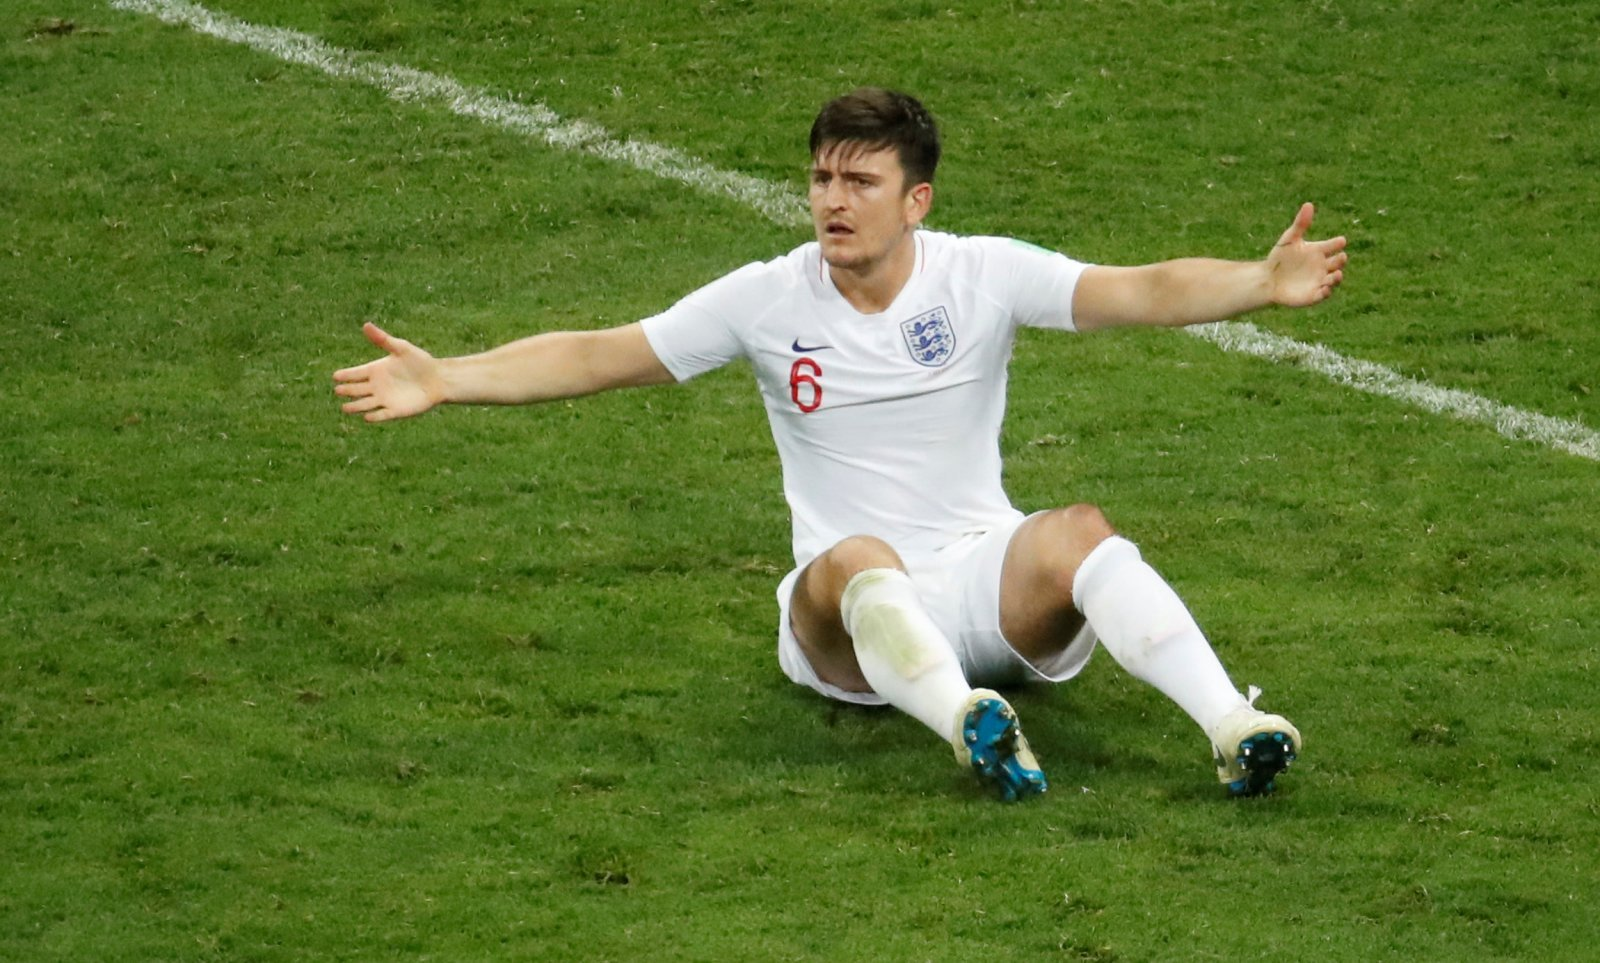 Harry Maguire exactly the kind of player to make Liverpool genuine contenders